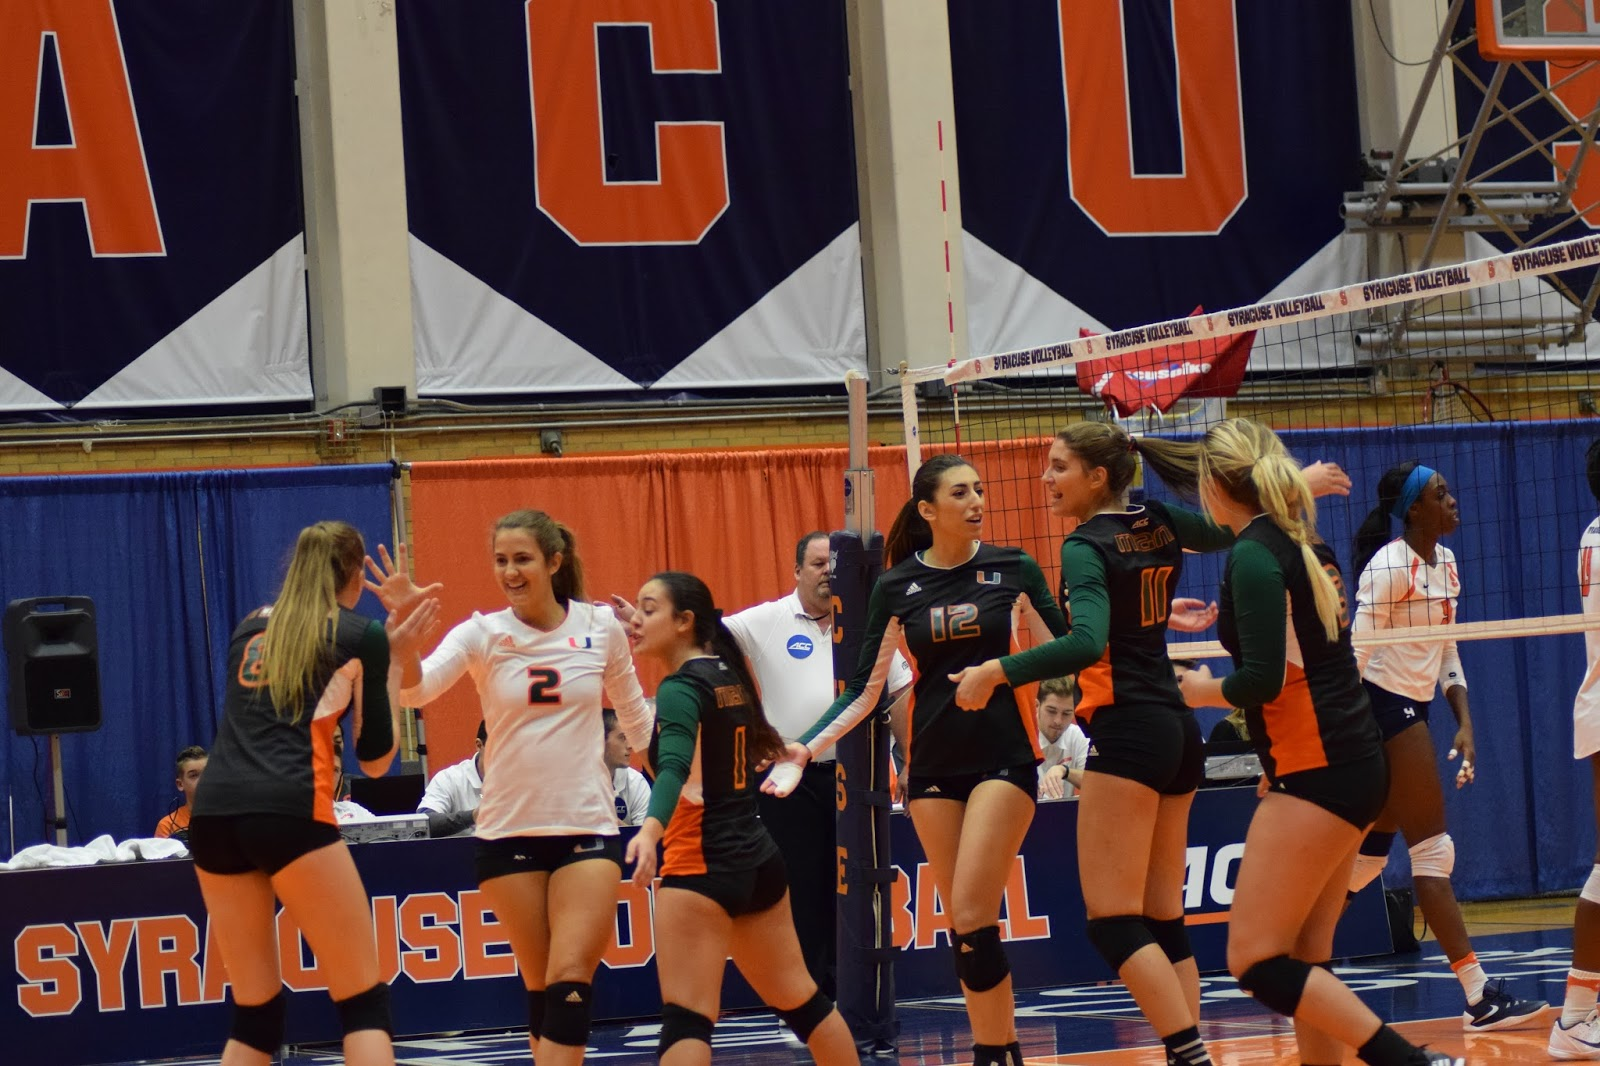 Volleyball: Canes beat Cuse 3-1